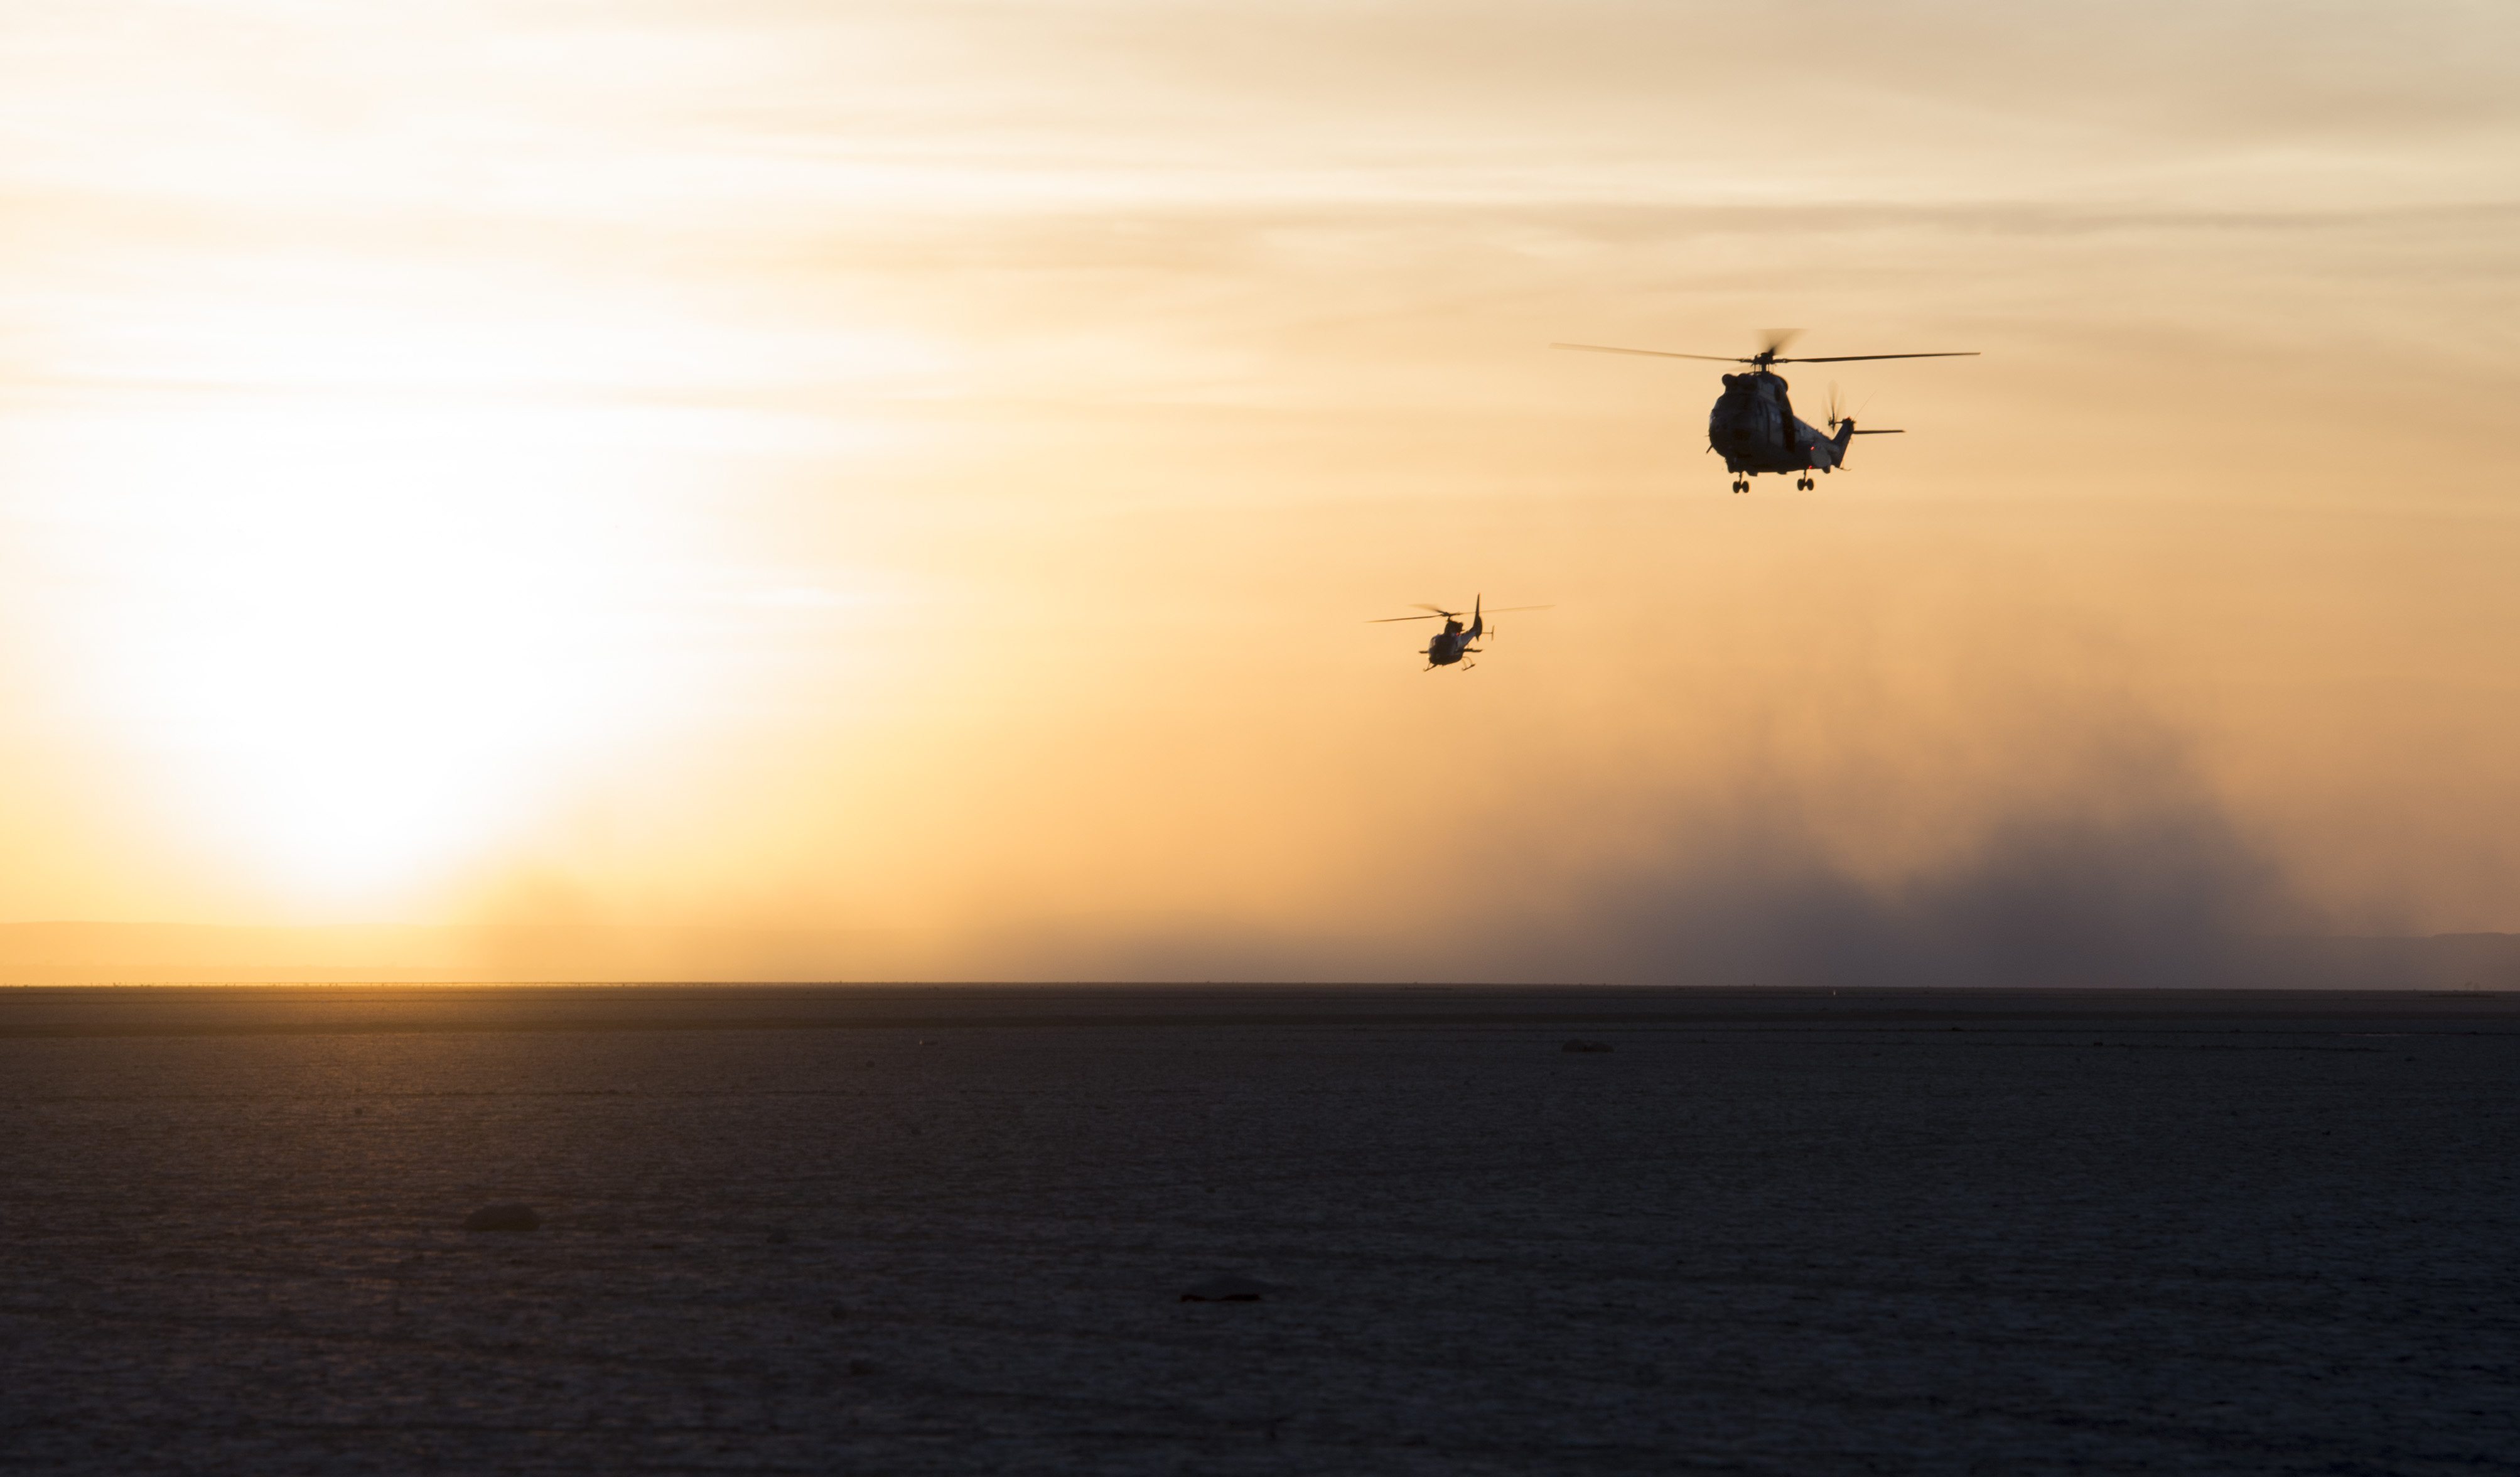 A French SA 330 Puma transport helicopter escorted by an SA 342 Gazelle utility helicopter approach a designed landing site to make a low aerial pass during the French live fire demonstration near Grand Bara, Djibouti, Jan. 14, 2017. The SA 330 Puma is a medium lift all-weather helicopter capable of transporting up to 16 people in and out of a battlefield. The SA 342 Gazelle is a light, five-seat helicopter often used by various militaries for reconnaissance and light attack duties. (U.S. Air National Guard photo by:  Staff Sgt. Christian Jadot)